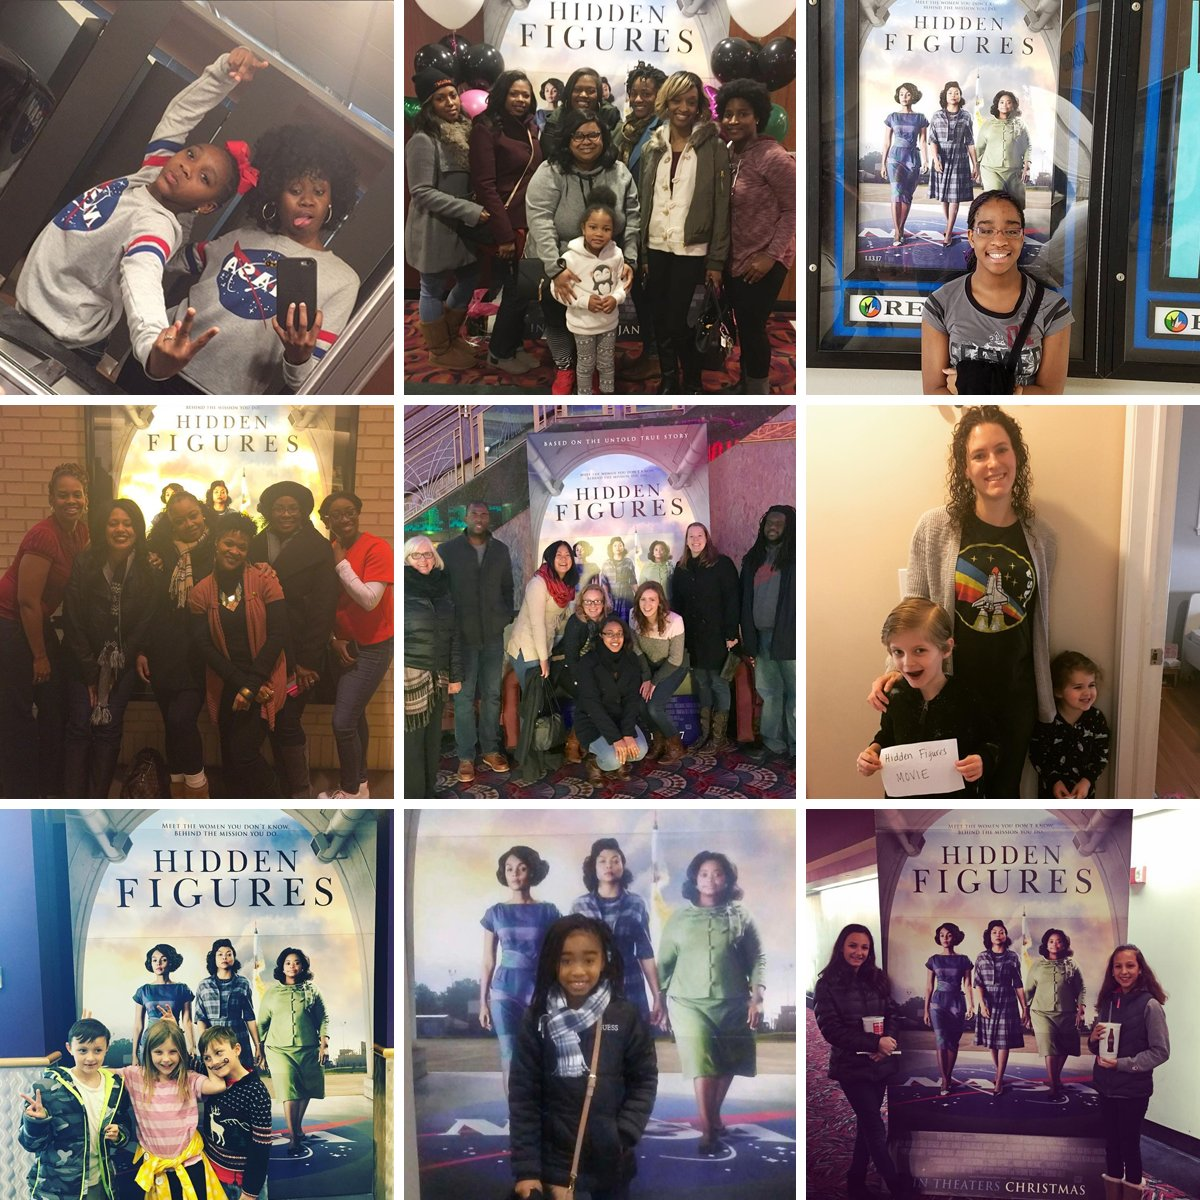 Thank you to everyone supporting #HiddenFigures🚀 and seeing it in theaters this weekend! Keep sending us your pictures using #HiddenFigures! https://t.co/YvPV4IPCec